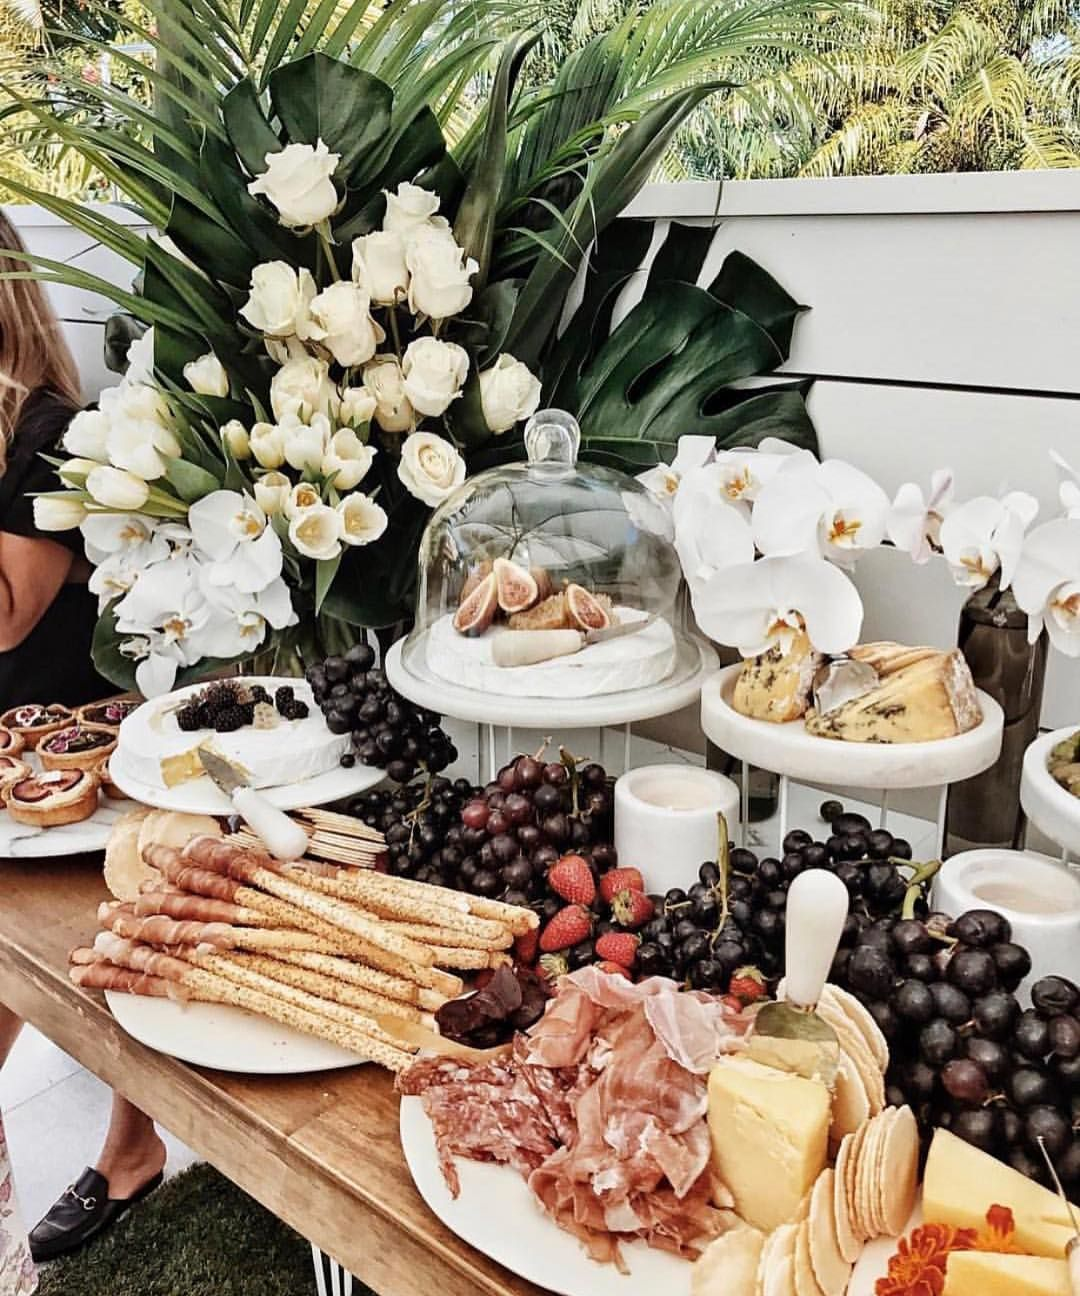 Beach Wedding Food Ideas: Pin By Laine Lister On Birthday Party Ideas In 2019